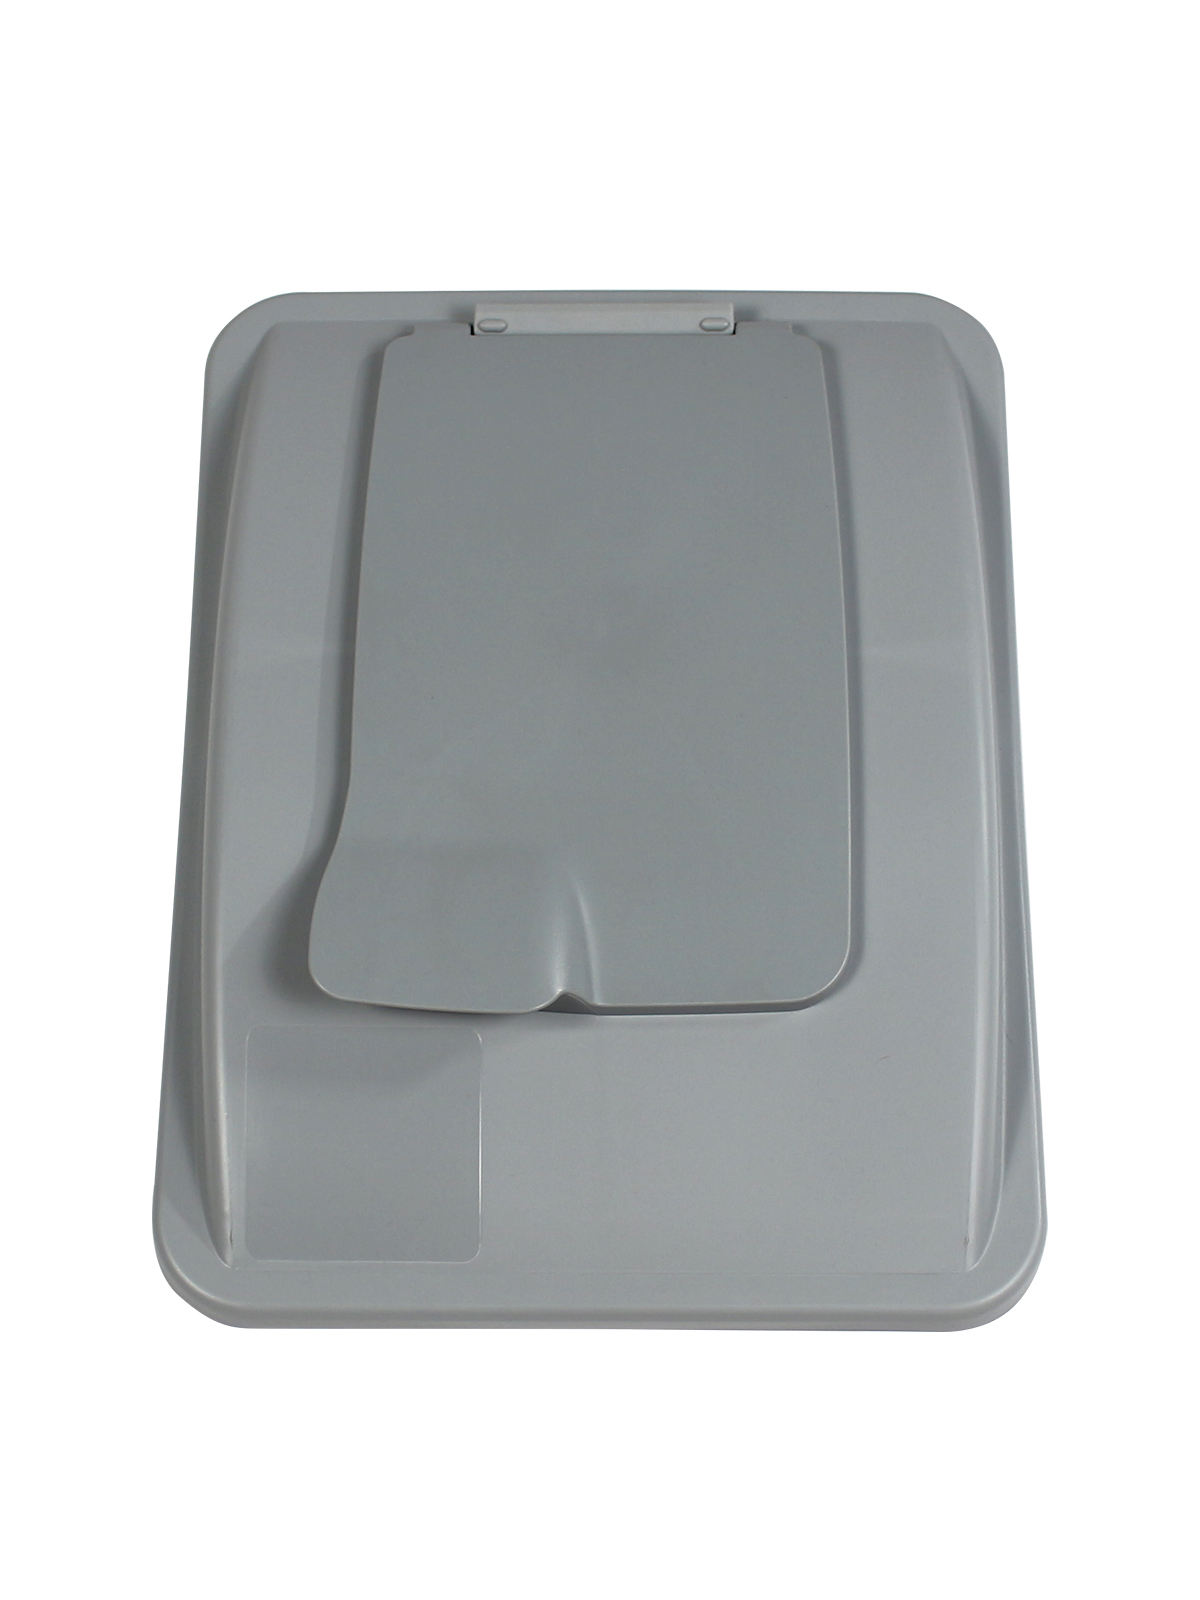 WASTE WATCHER® XL - LIFT LID - SOLID OPENING - EXECUTIVE GREY title=